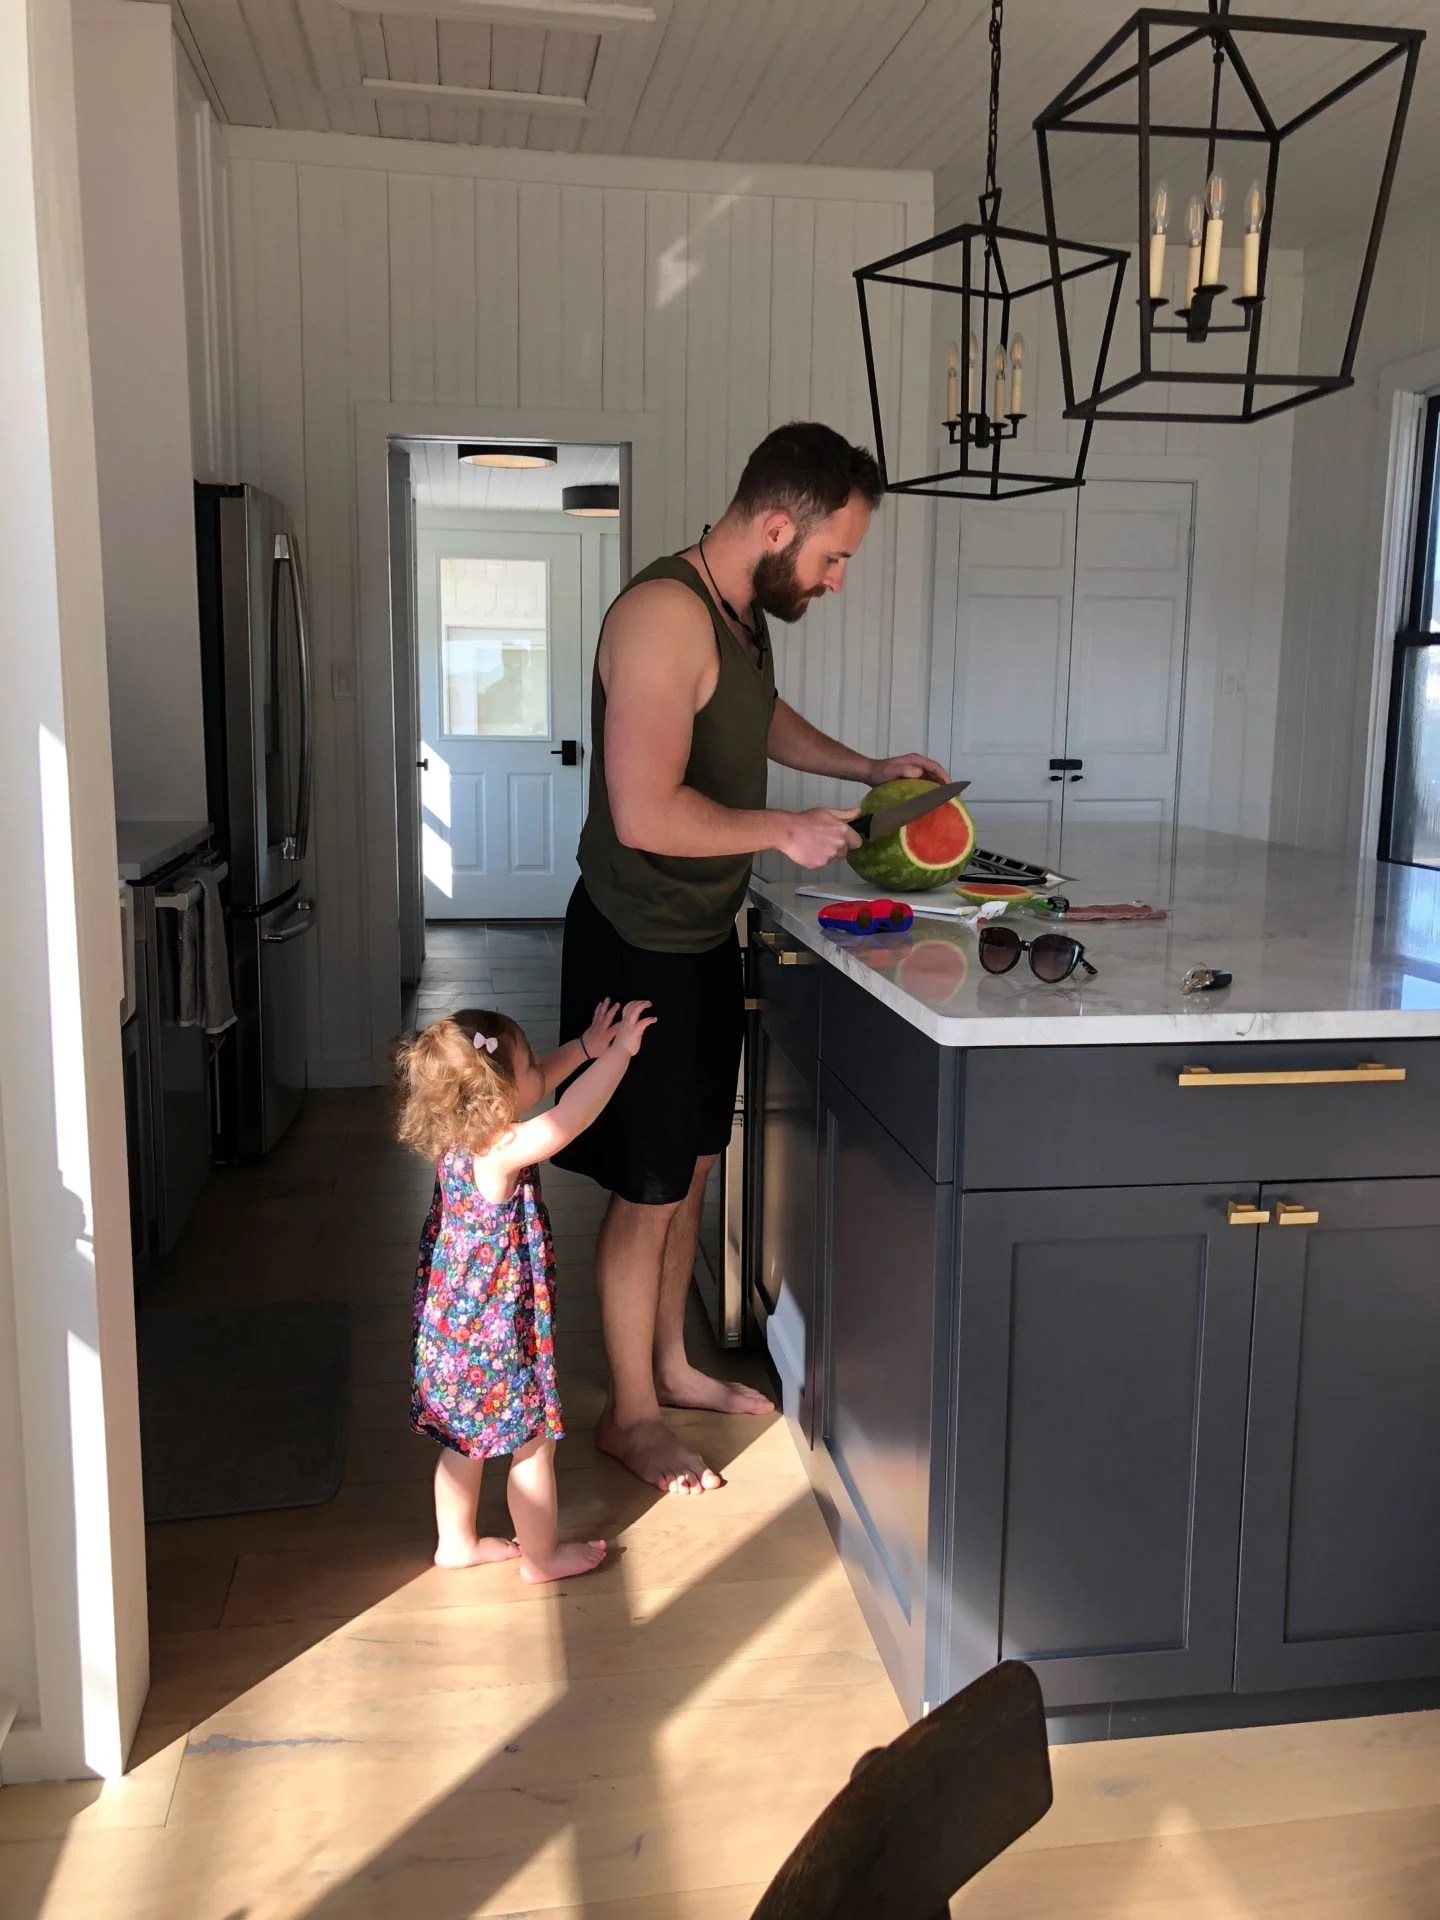 Philadelphia Lifestyle Blogger Chocolate and Lace shares her family vacation to a renovated Farm House in Southern New Jersey.